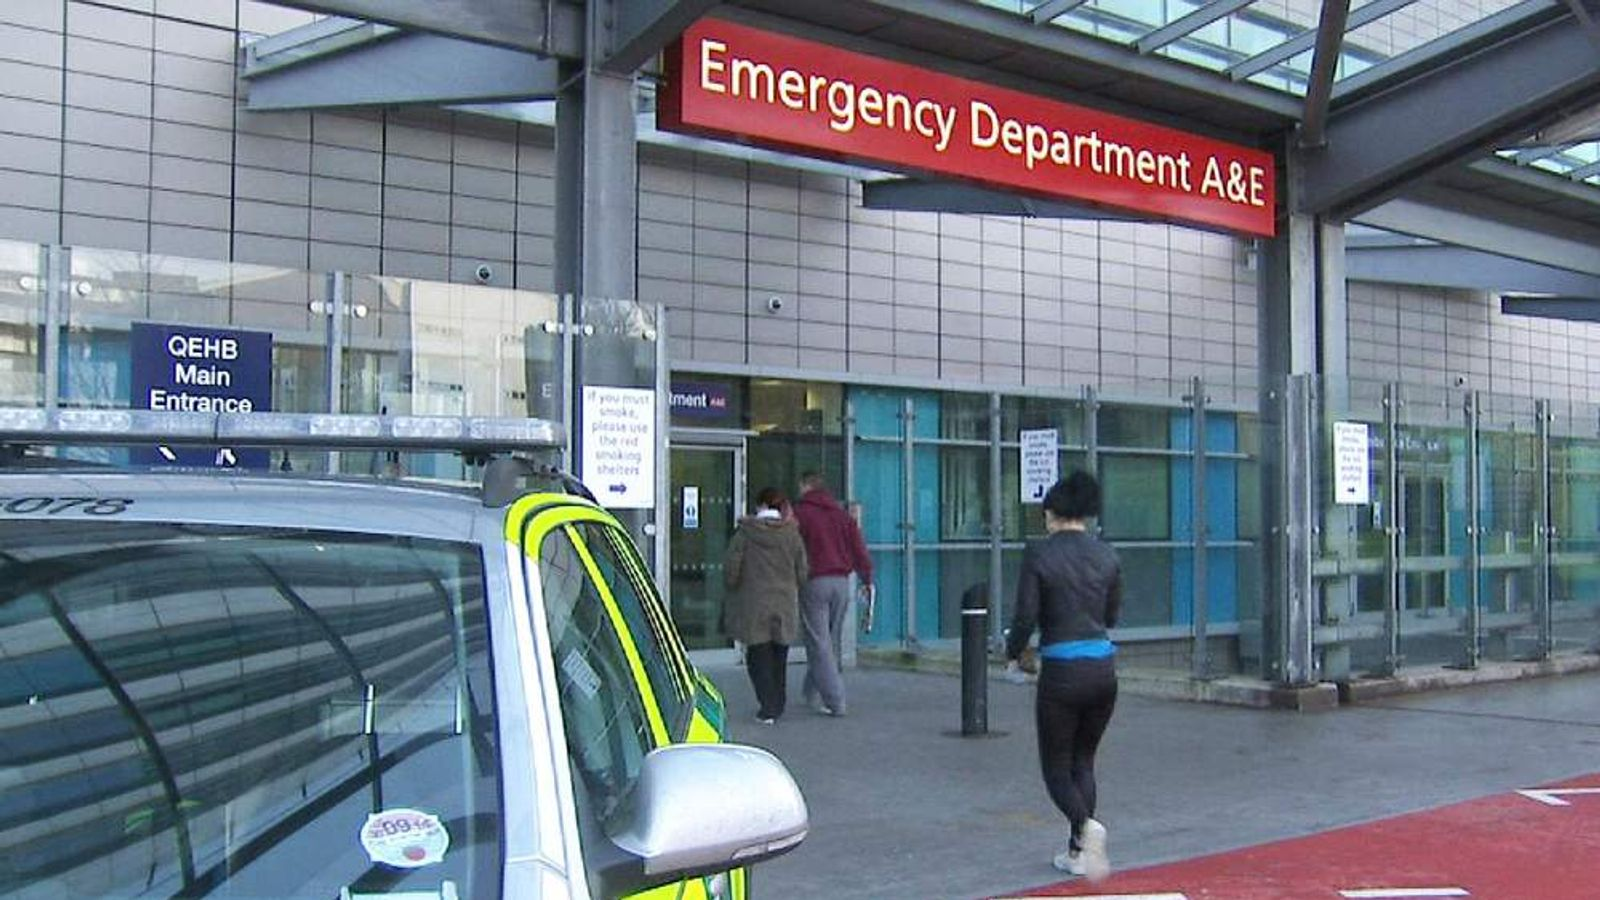 An accident and emergency departmen